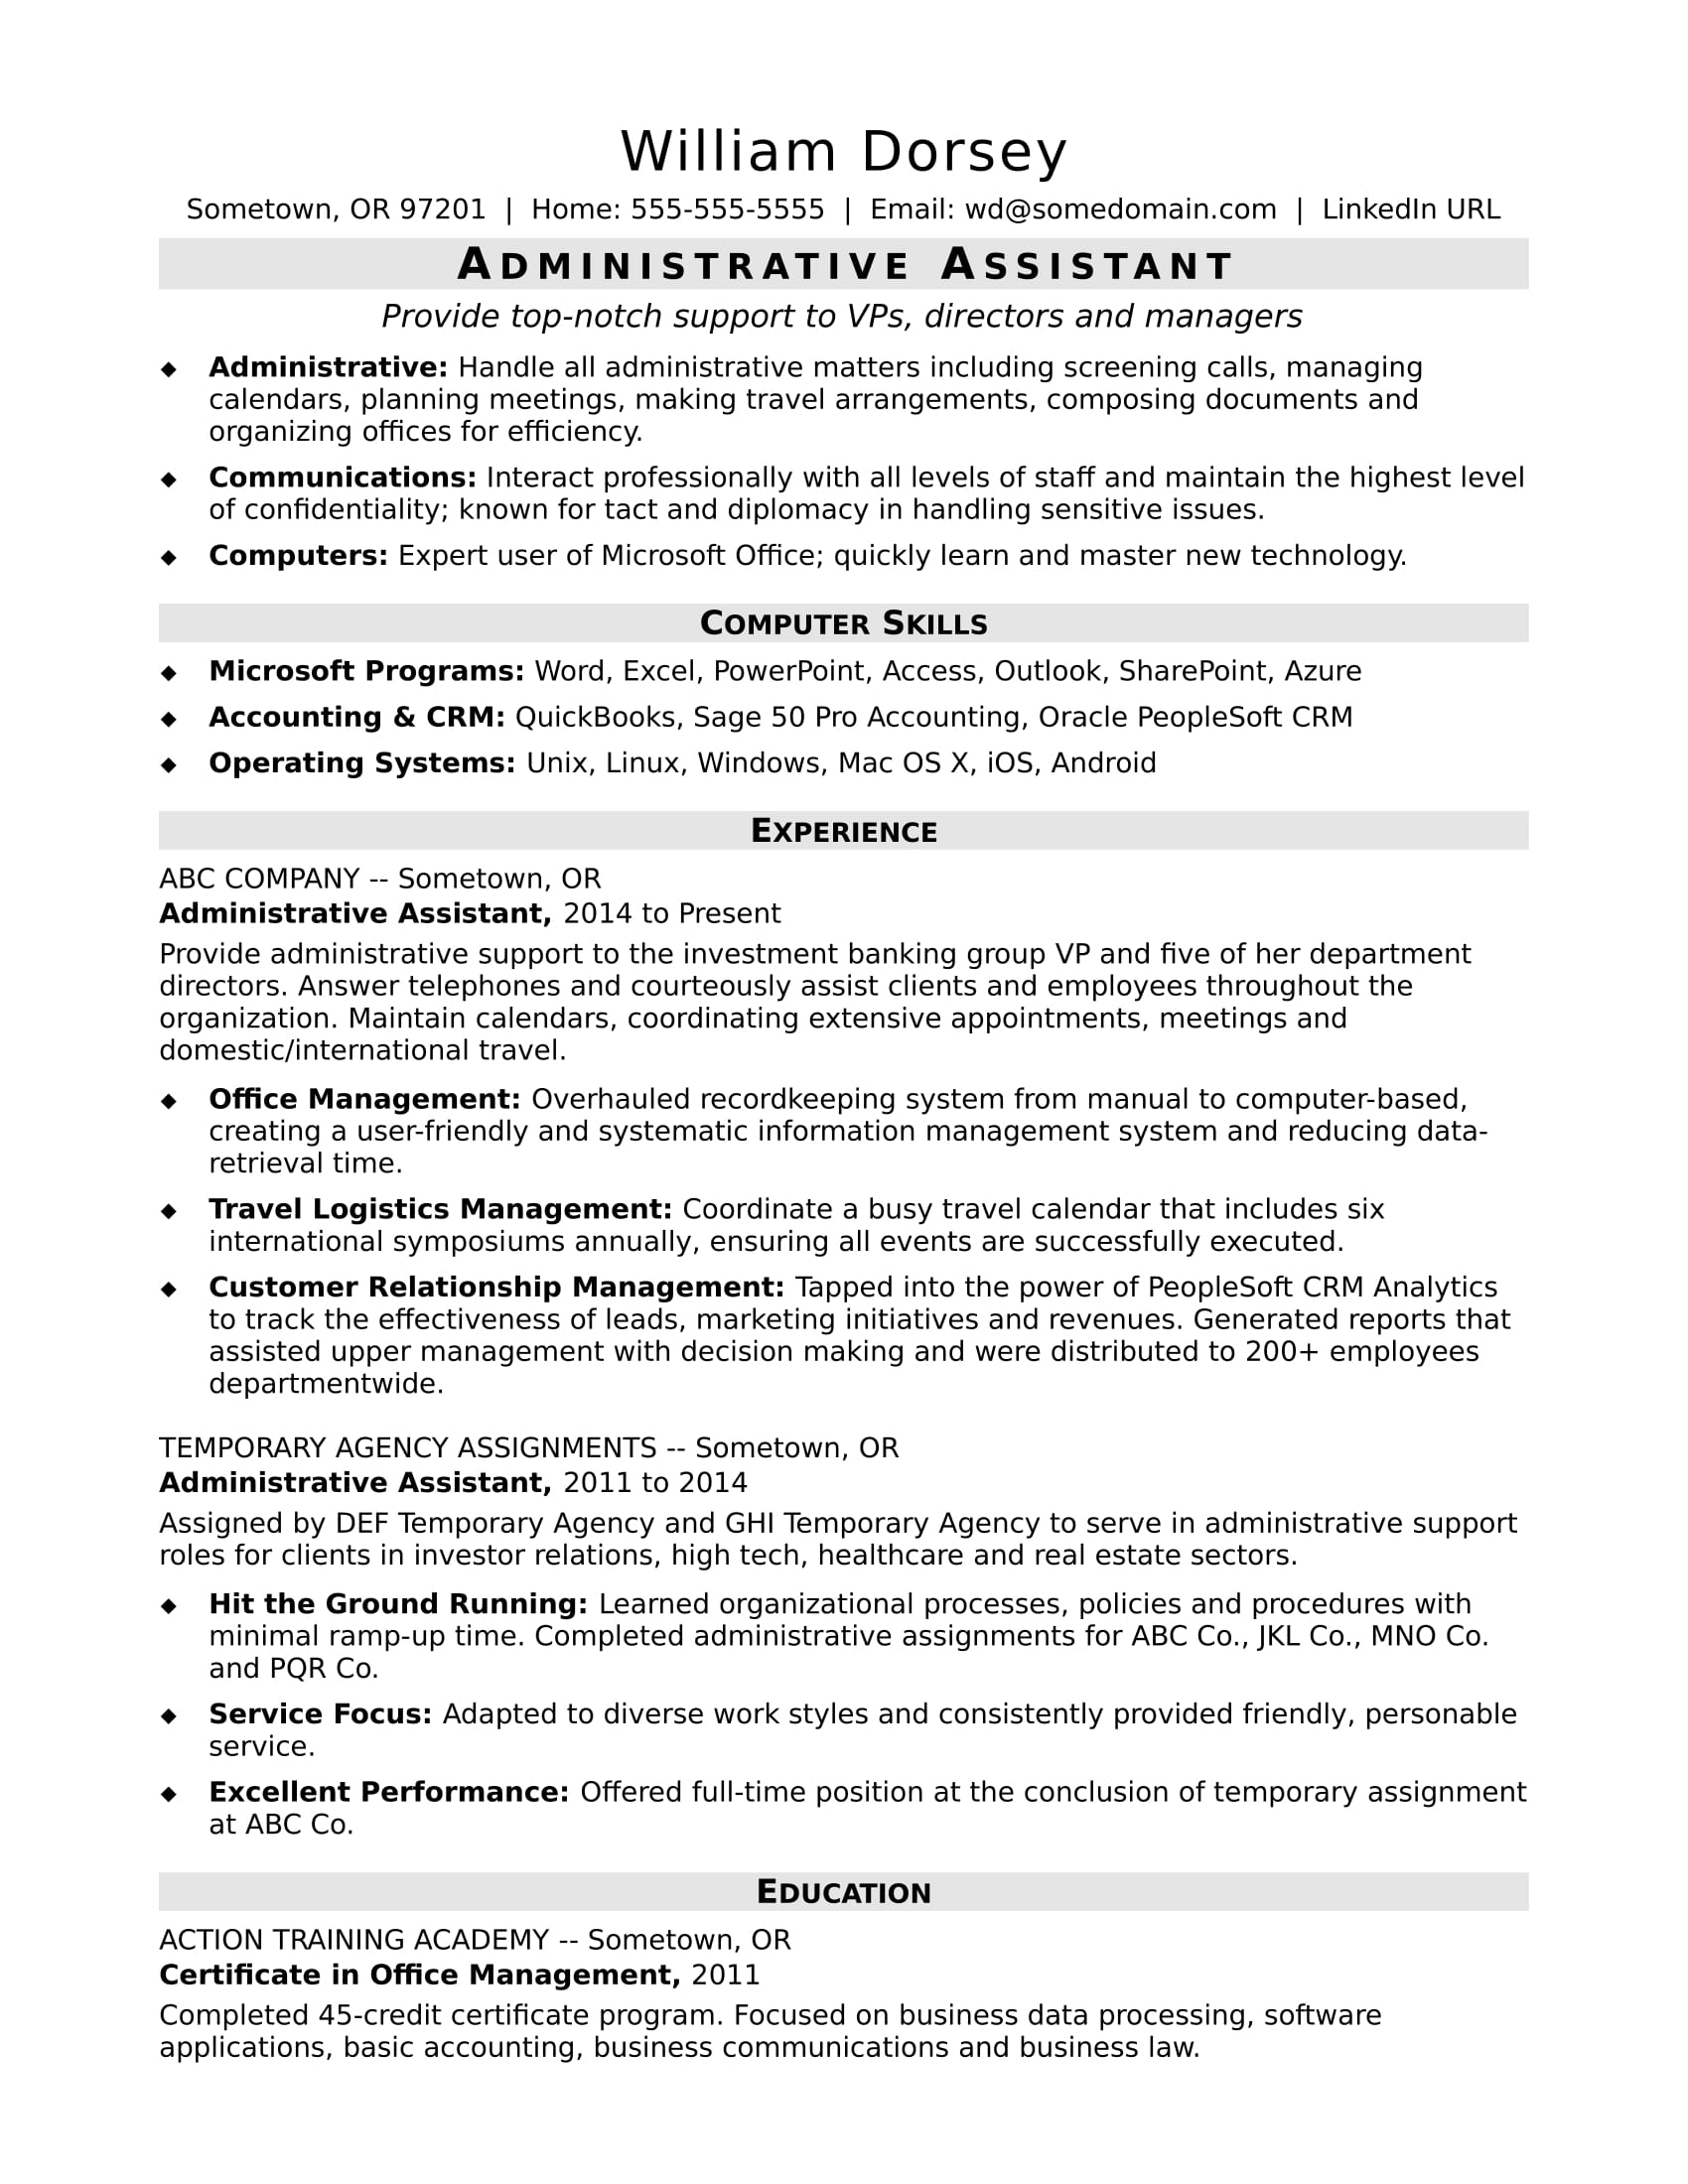 Midlevel administrative assistant resume sample monster sample resume for a midlevel administrative assistant madrichimfo Choice Image